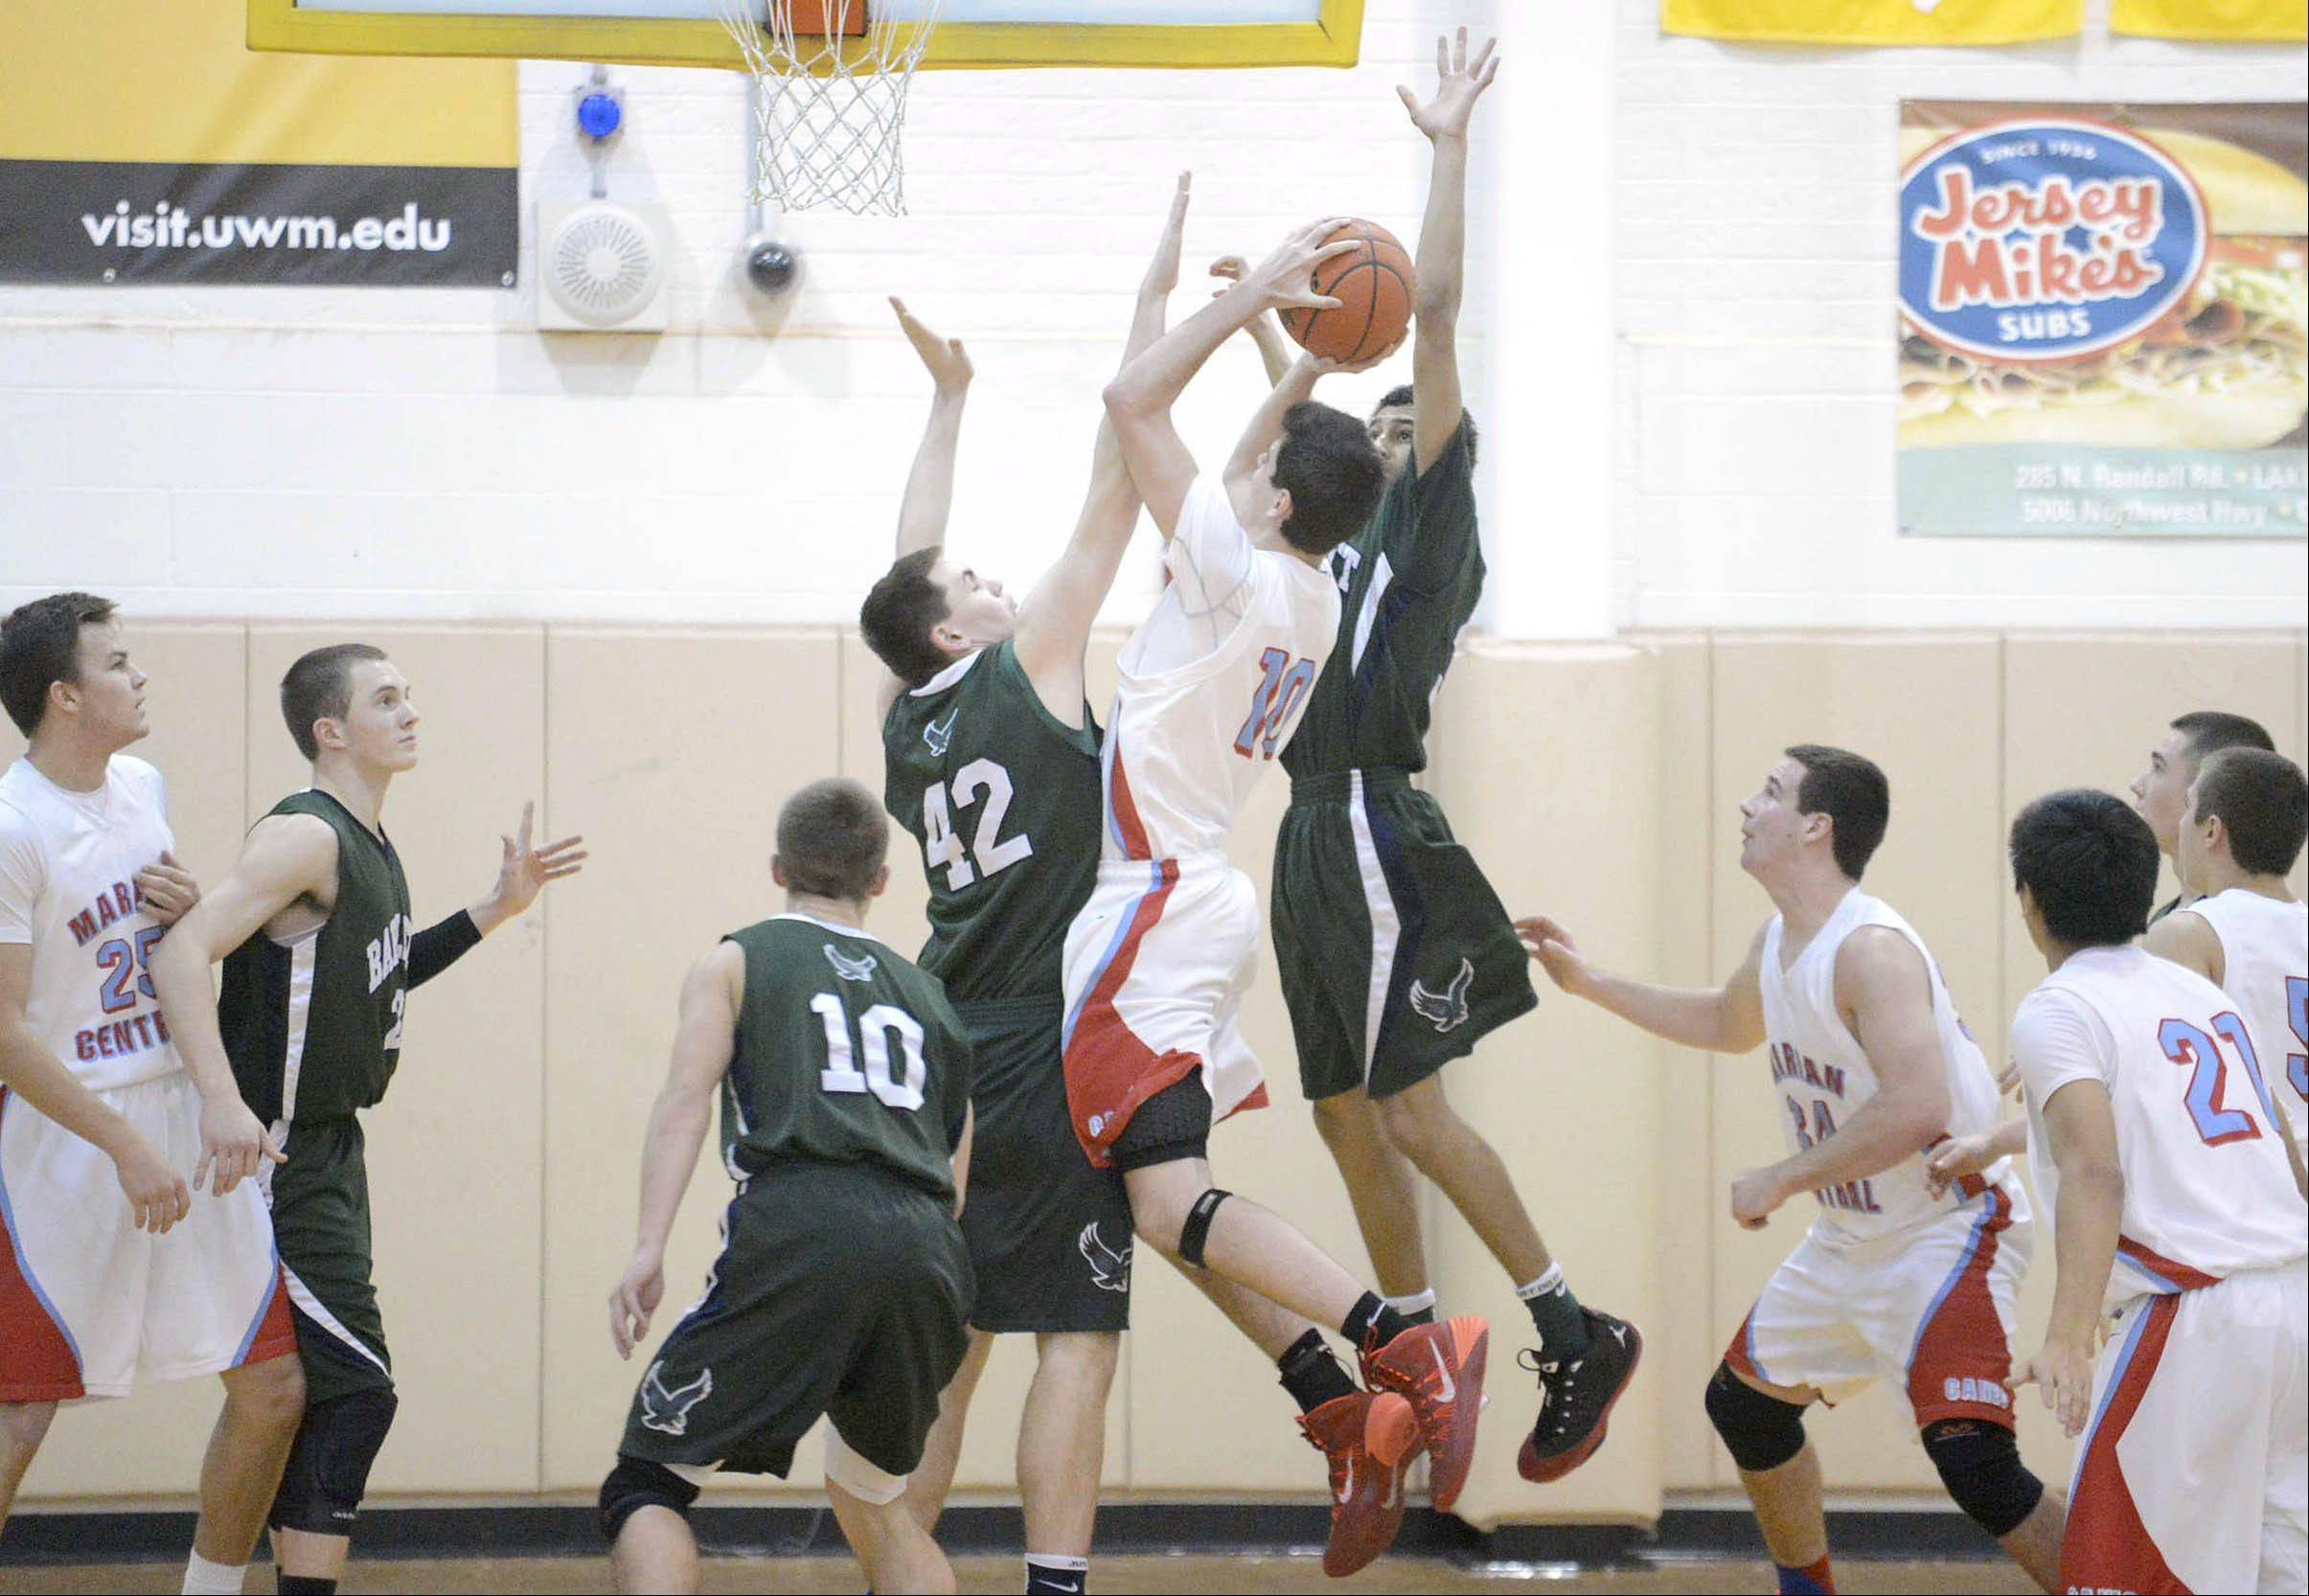 Images from the Bartlett vs. Marian Central Catholic boys basketball game Saturday, December 21, in Algonquin.